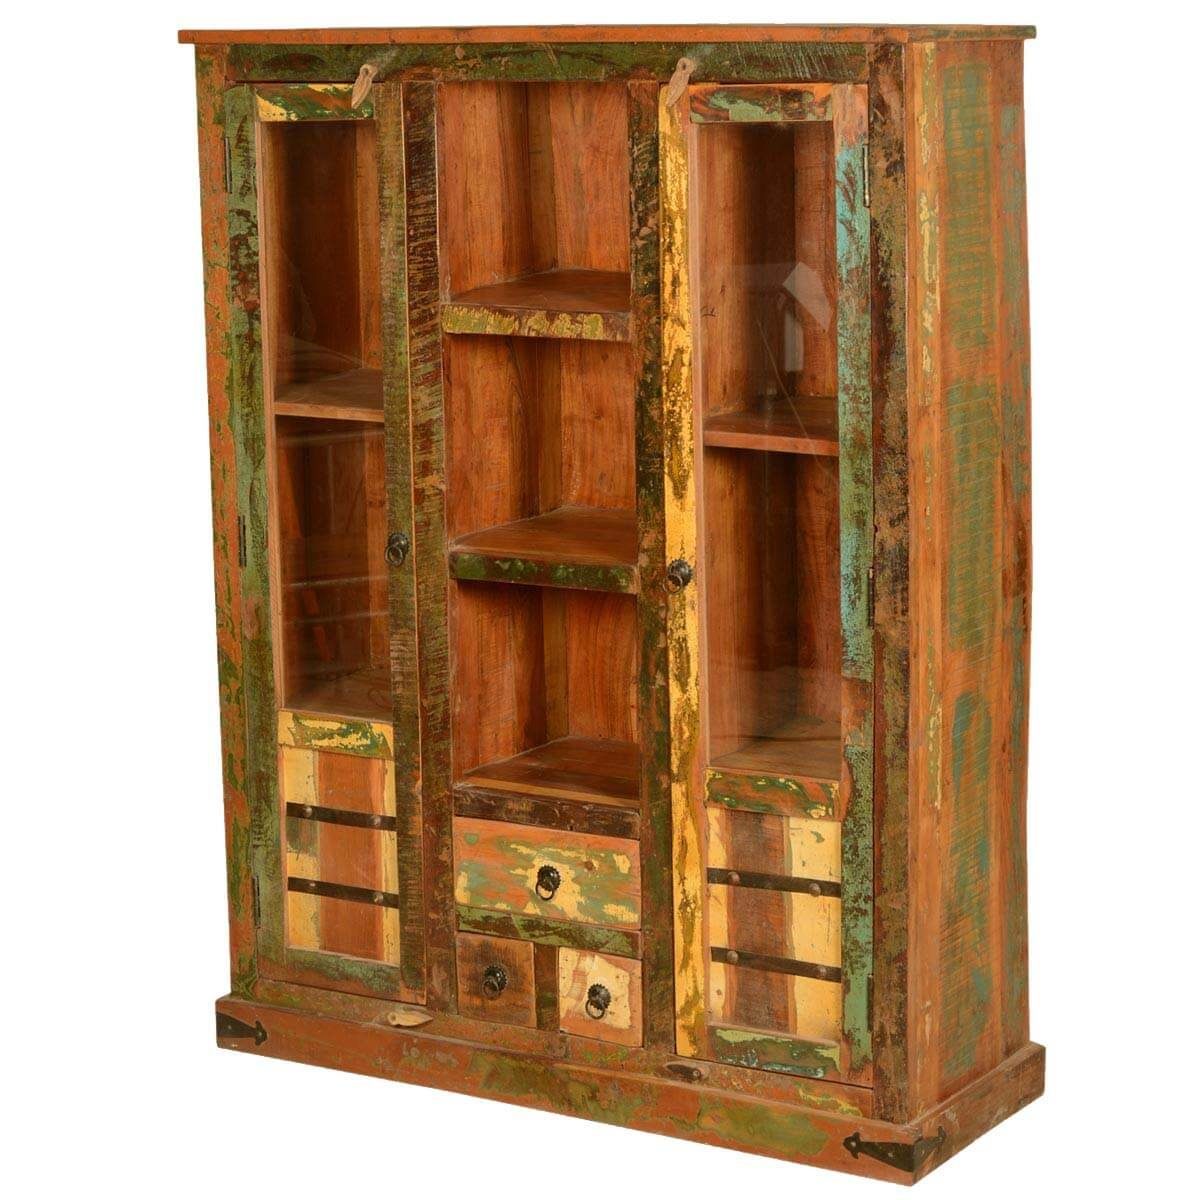 1200 #BF7B0C Speckled Rustic Reclaimed Wood Display Cabinet W Glass Doors picture/photo Wood And Glass Doors 40191200